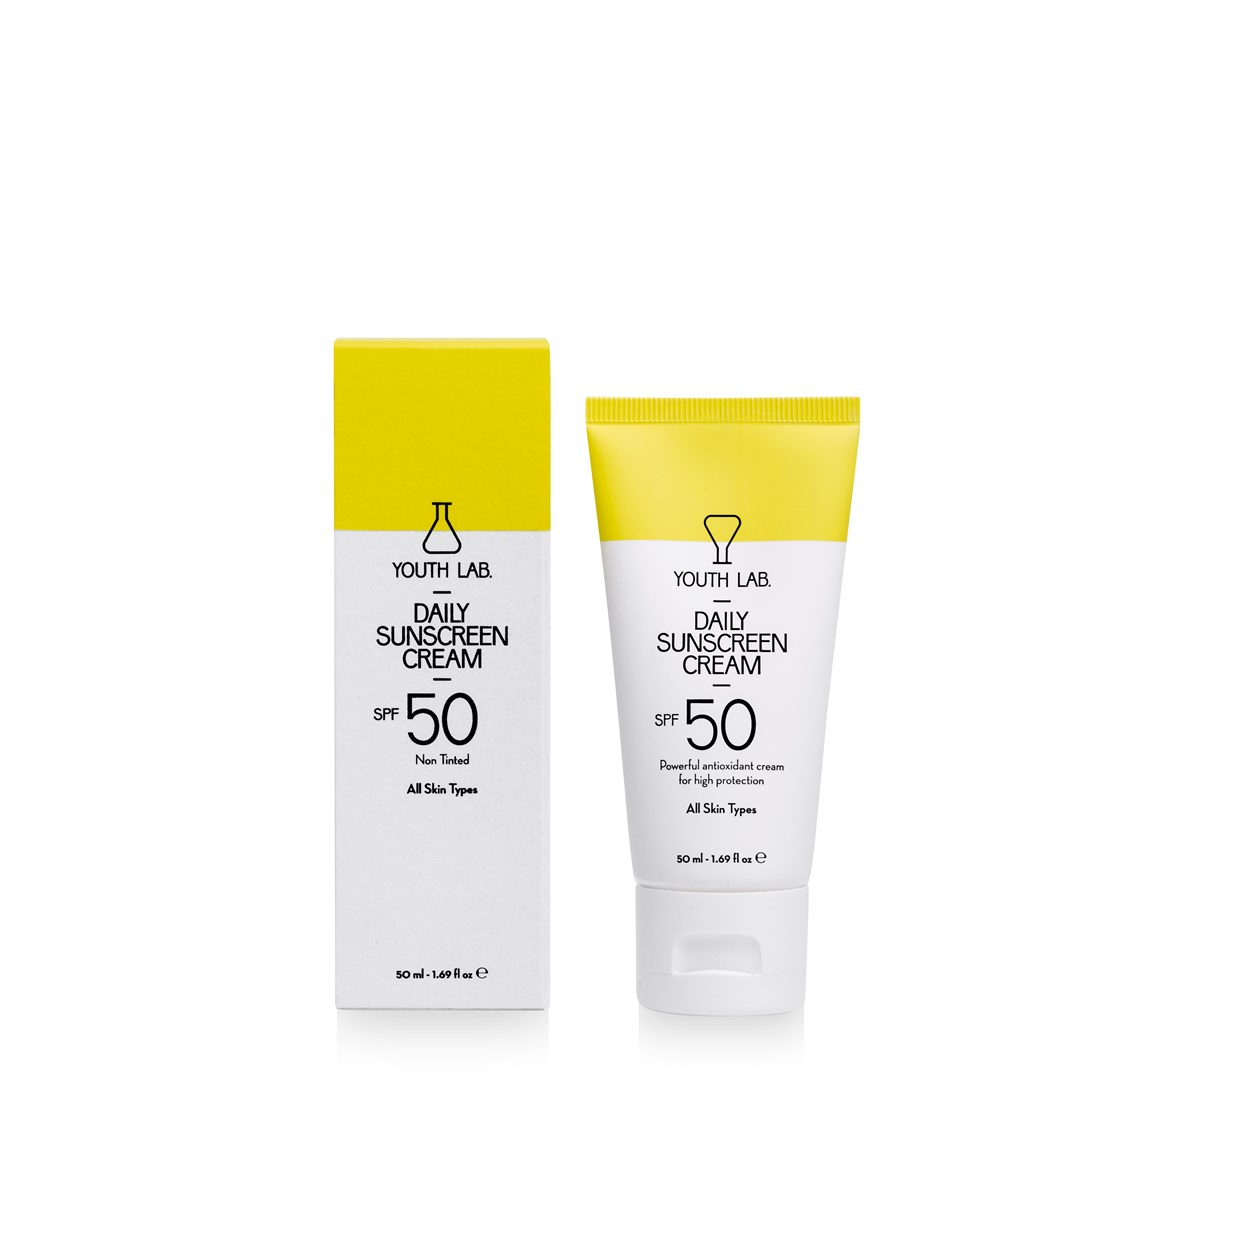 Daily Sunscreen Cream All Skin Types - 0